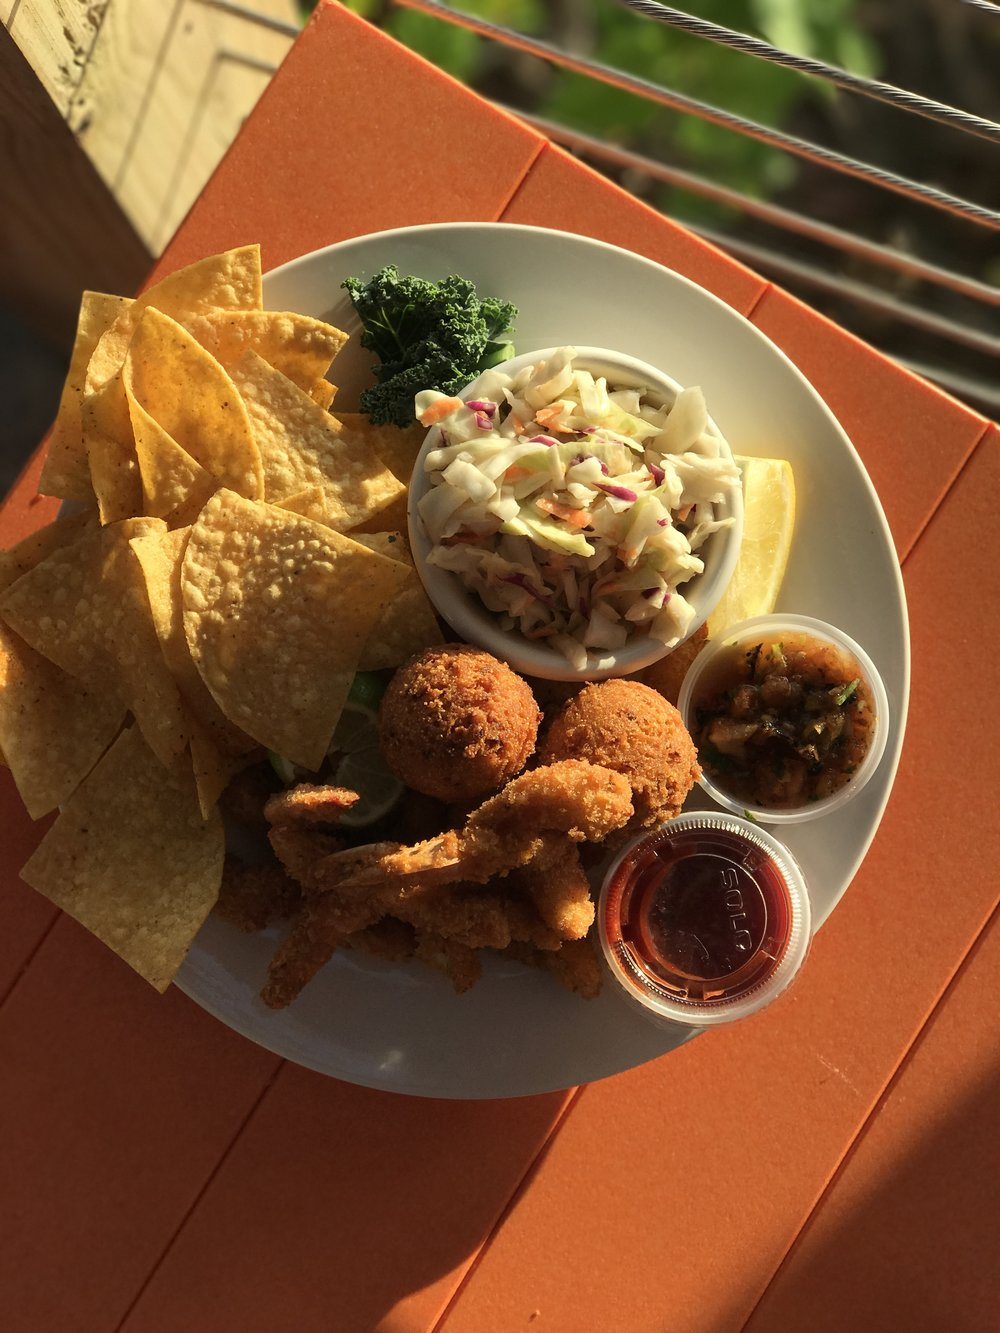 Fried shrimp basket at Painted Marlin Grille.